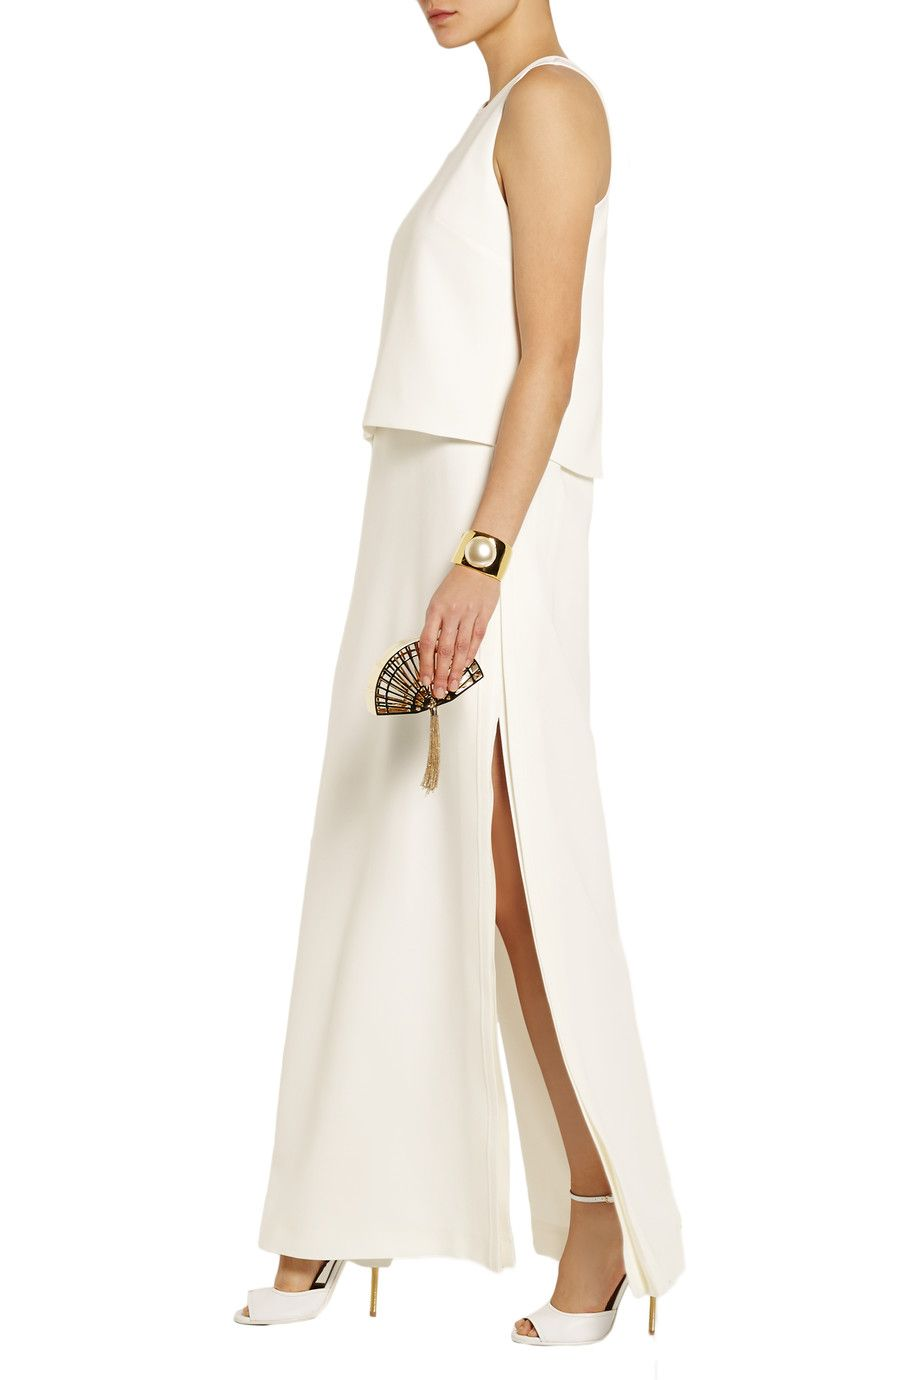 Shop on-sale Fendi Silk-cady gown. Browse other discount designer Dresses & more on The Most Fashionable Fashion Outlet, THE OUTNET.COM